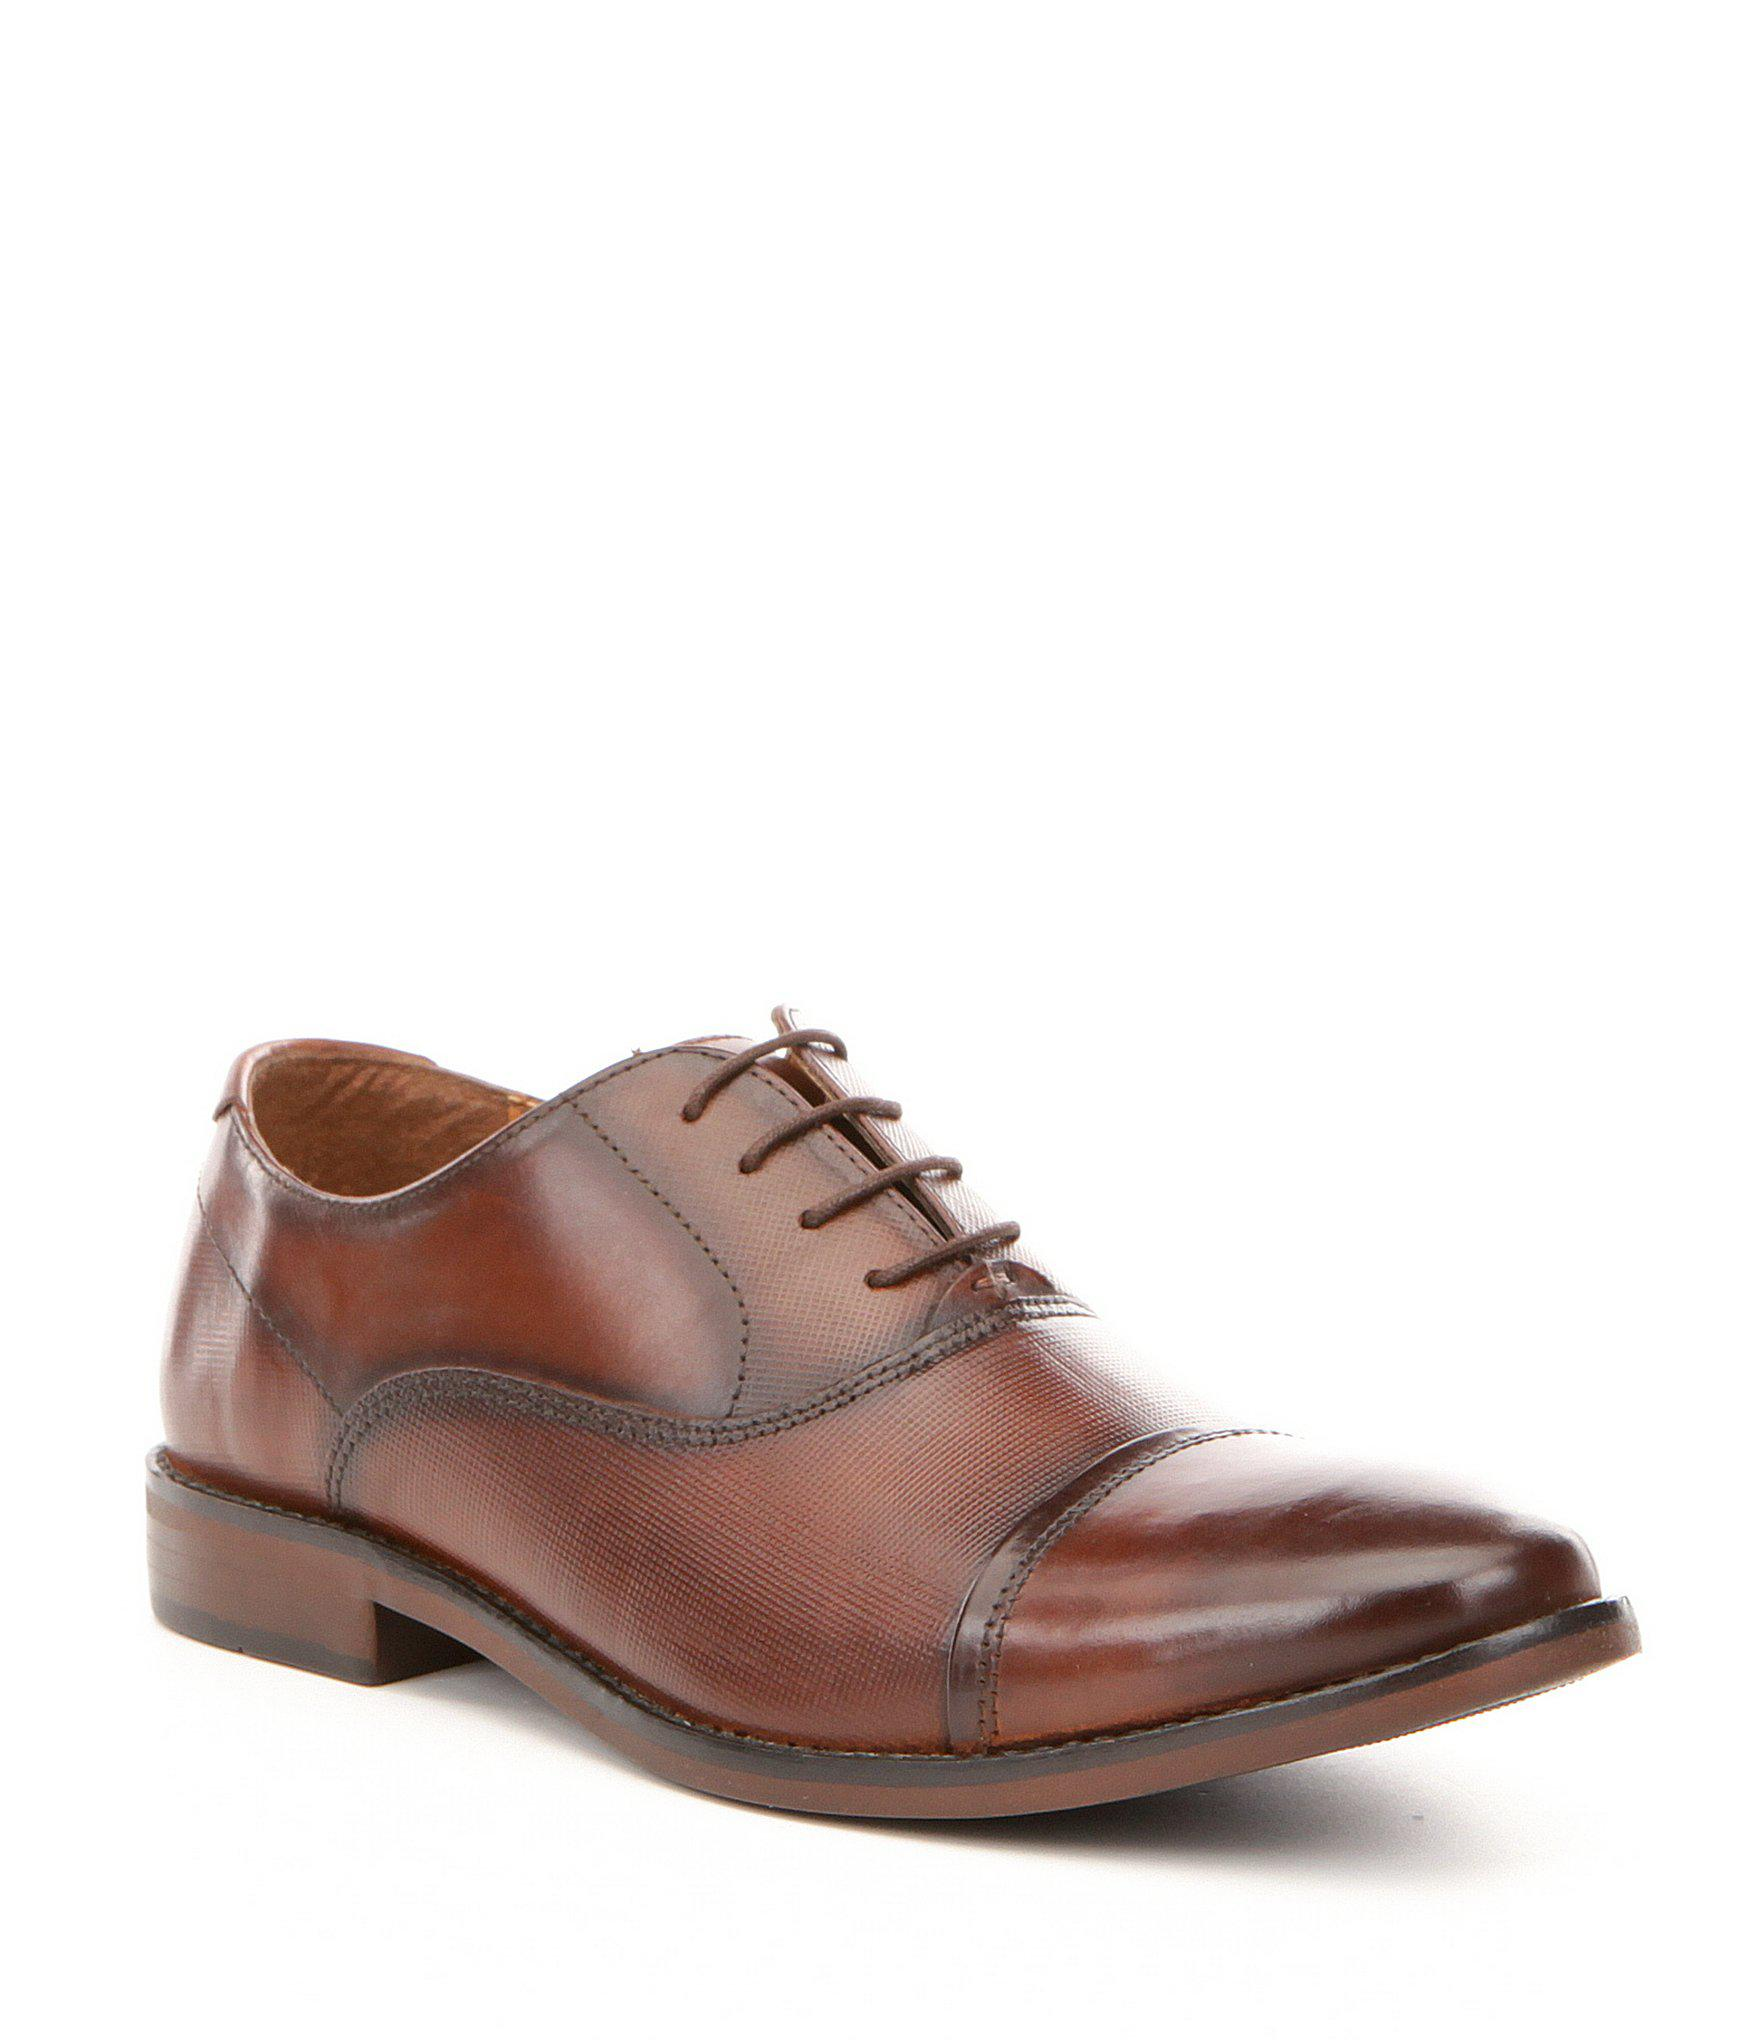 7c431ffe417 Steve Madden Men's Finnch Leather Lace-up Cap Toe Oxfords in Brown ...